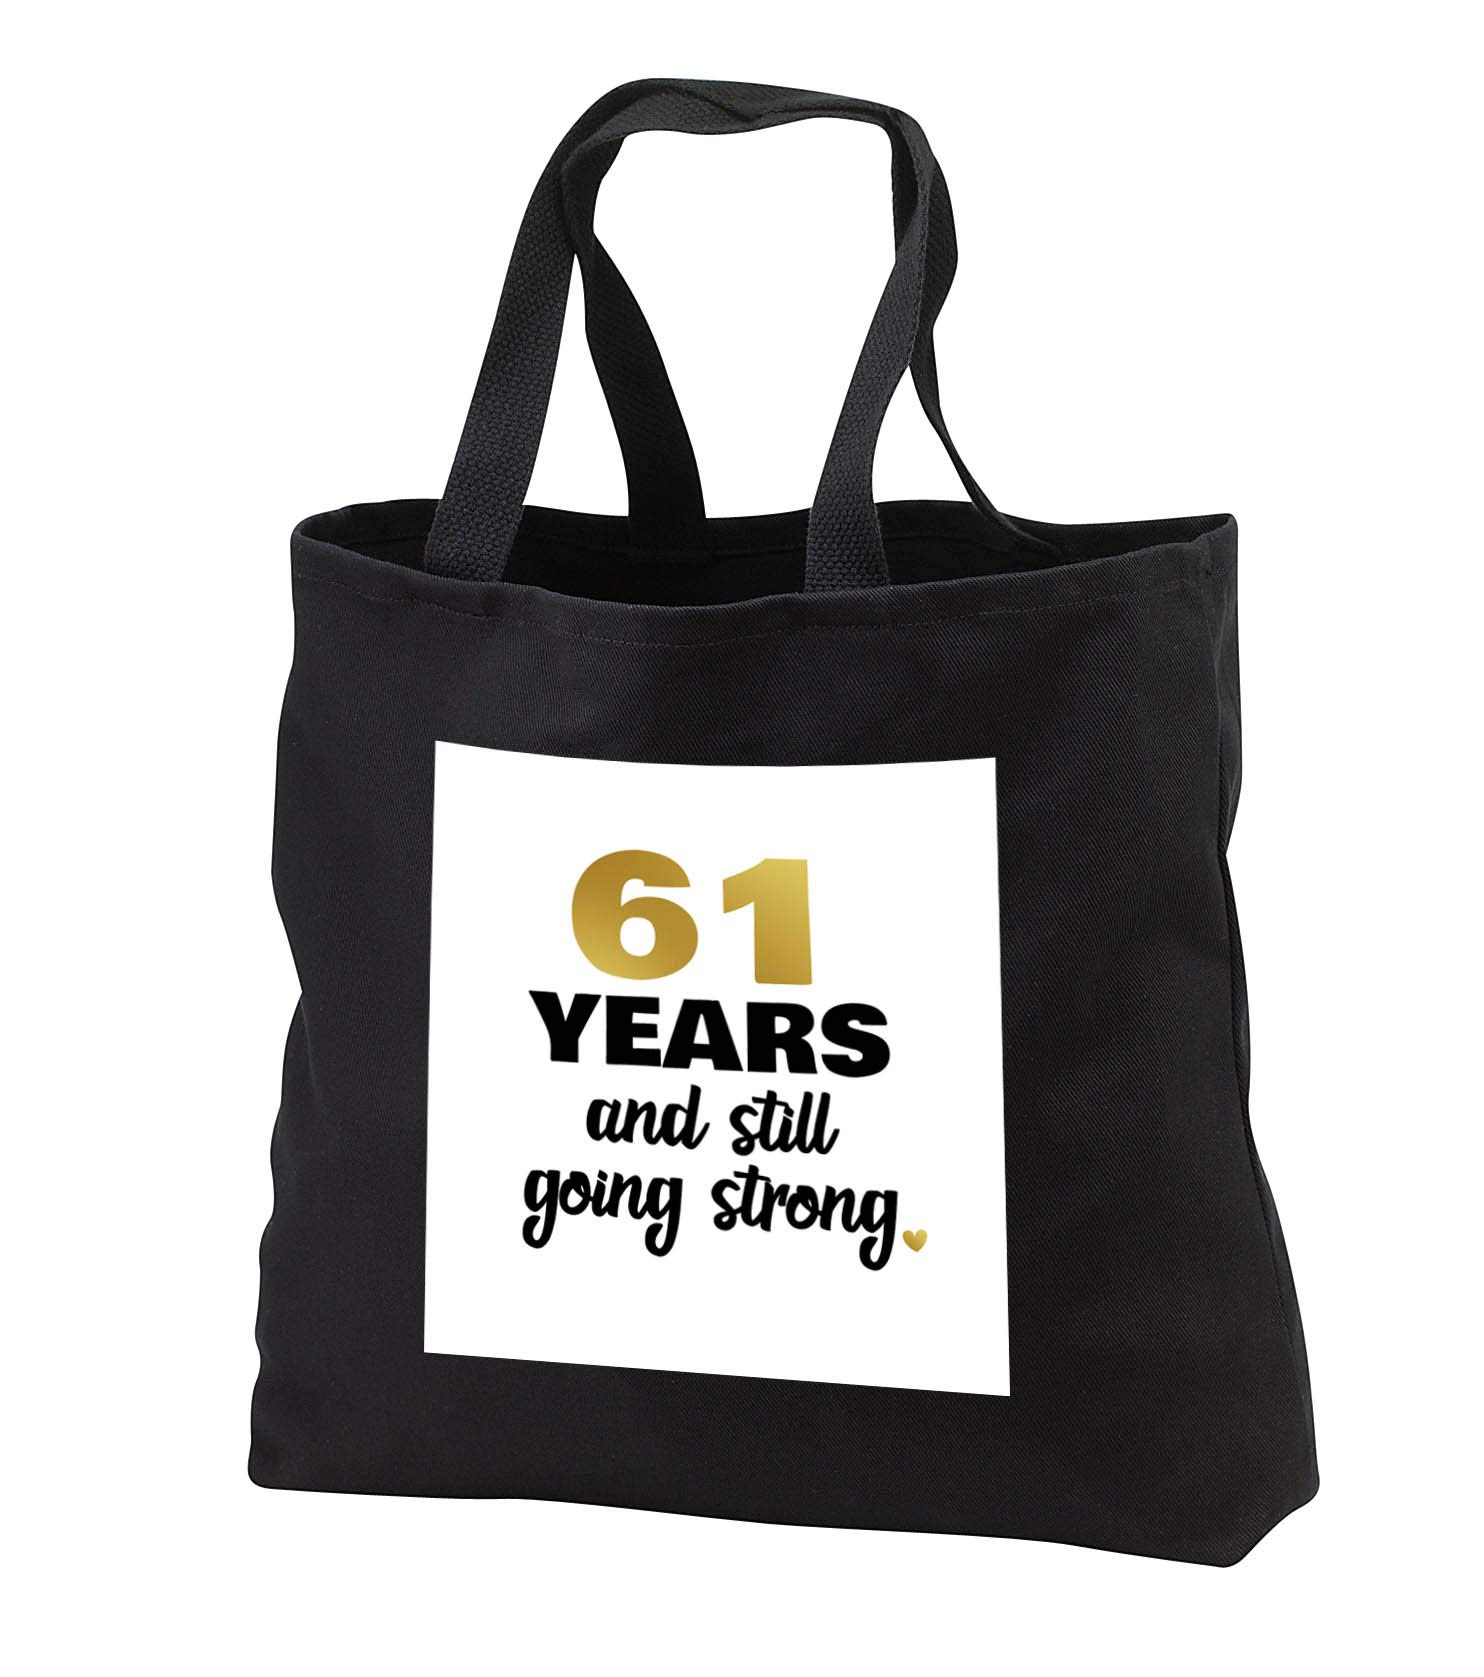 Janna Salak Designs Anniversary - 61 Year Anniversary Still Going Strong 61st Wedding Anniversary Gift - Tote Bags - Black Tote Bag 14w x 14h x 3d (tb_289693_1)